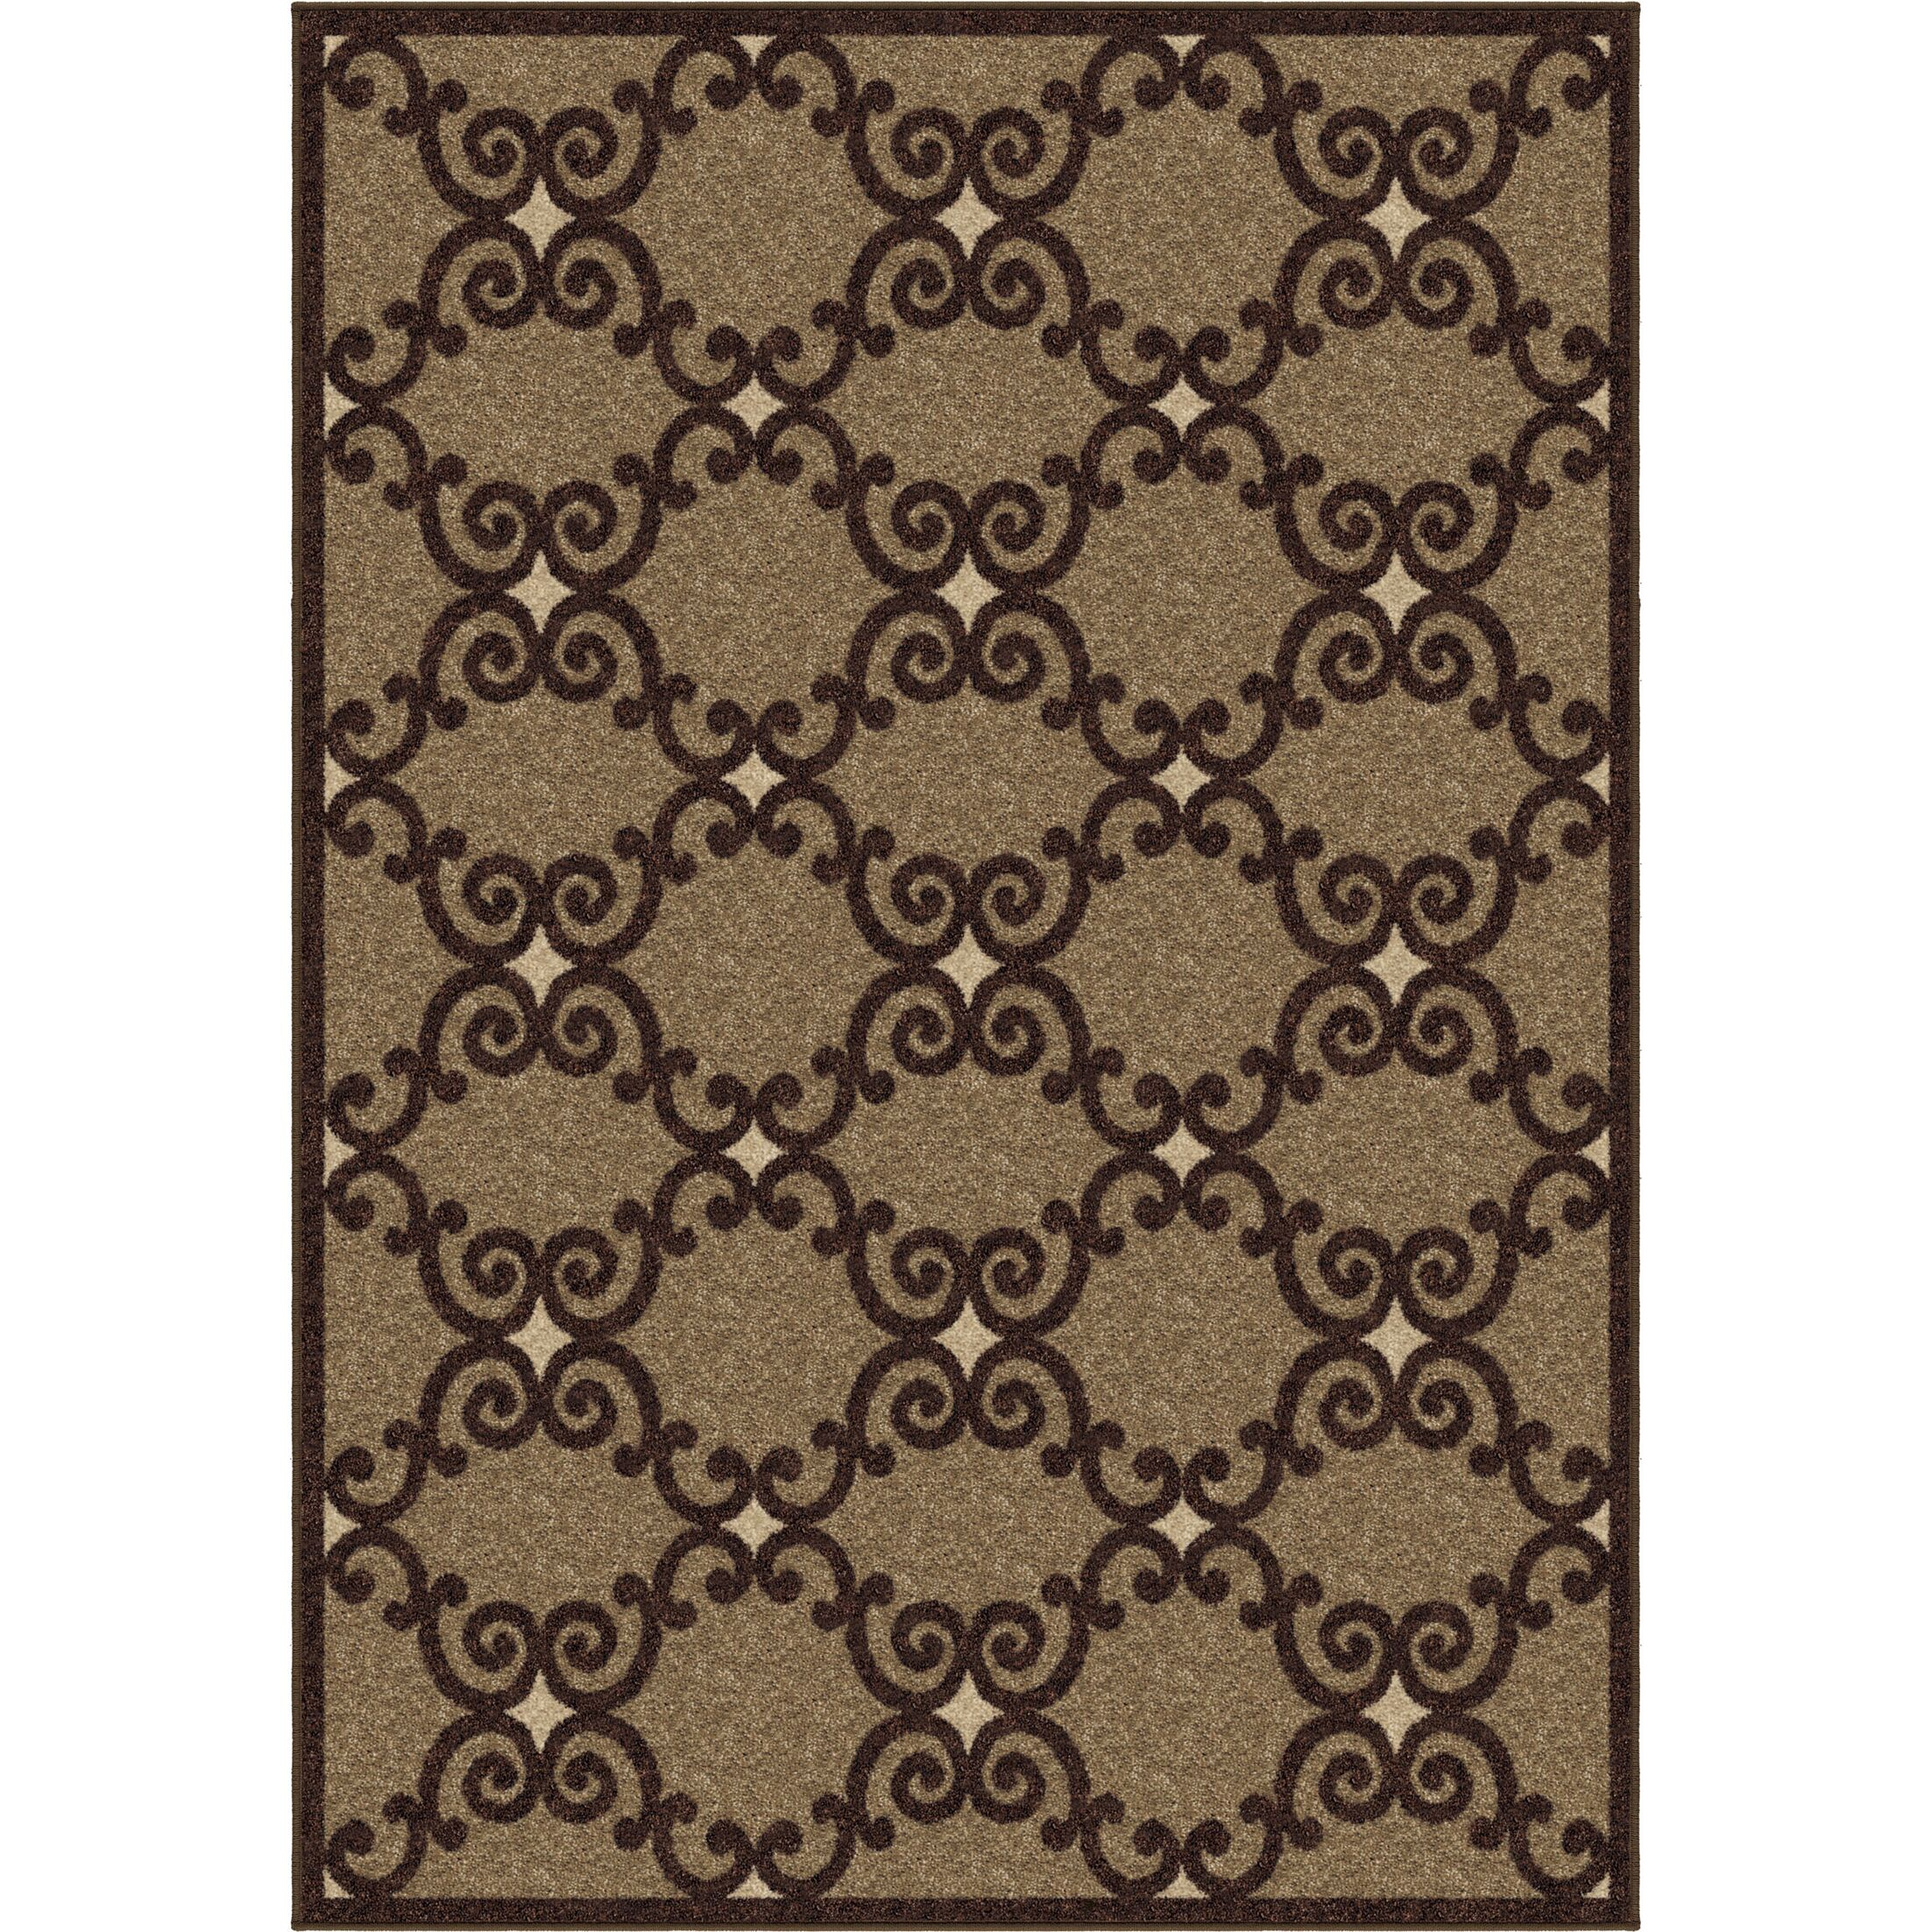 Plaines Brown Area Rug Rug Size: 5'3